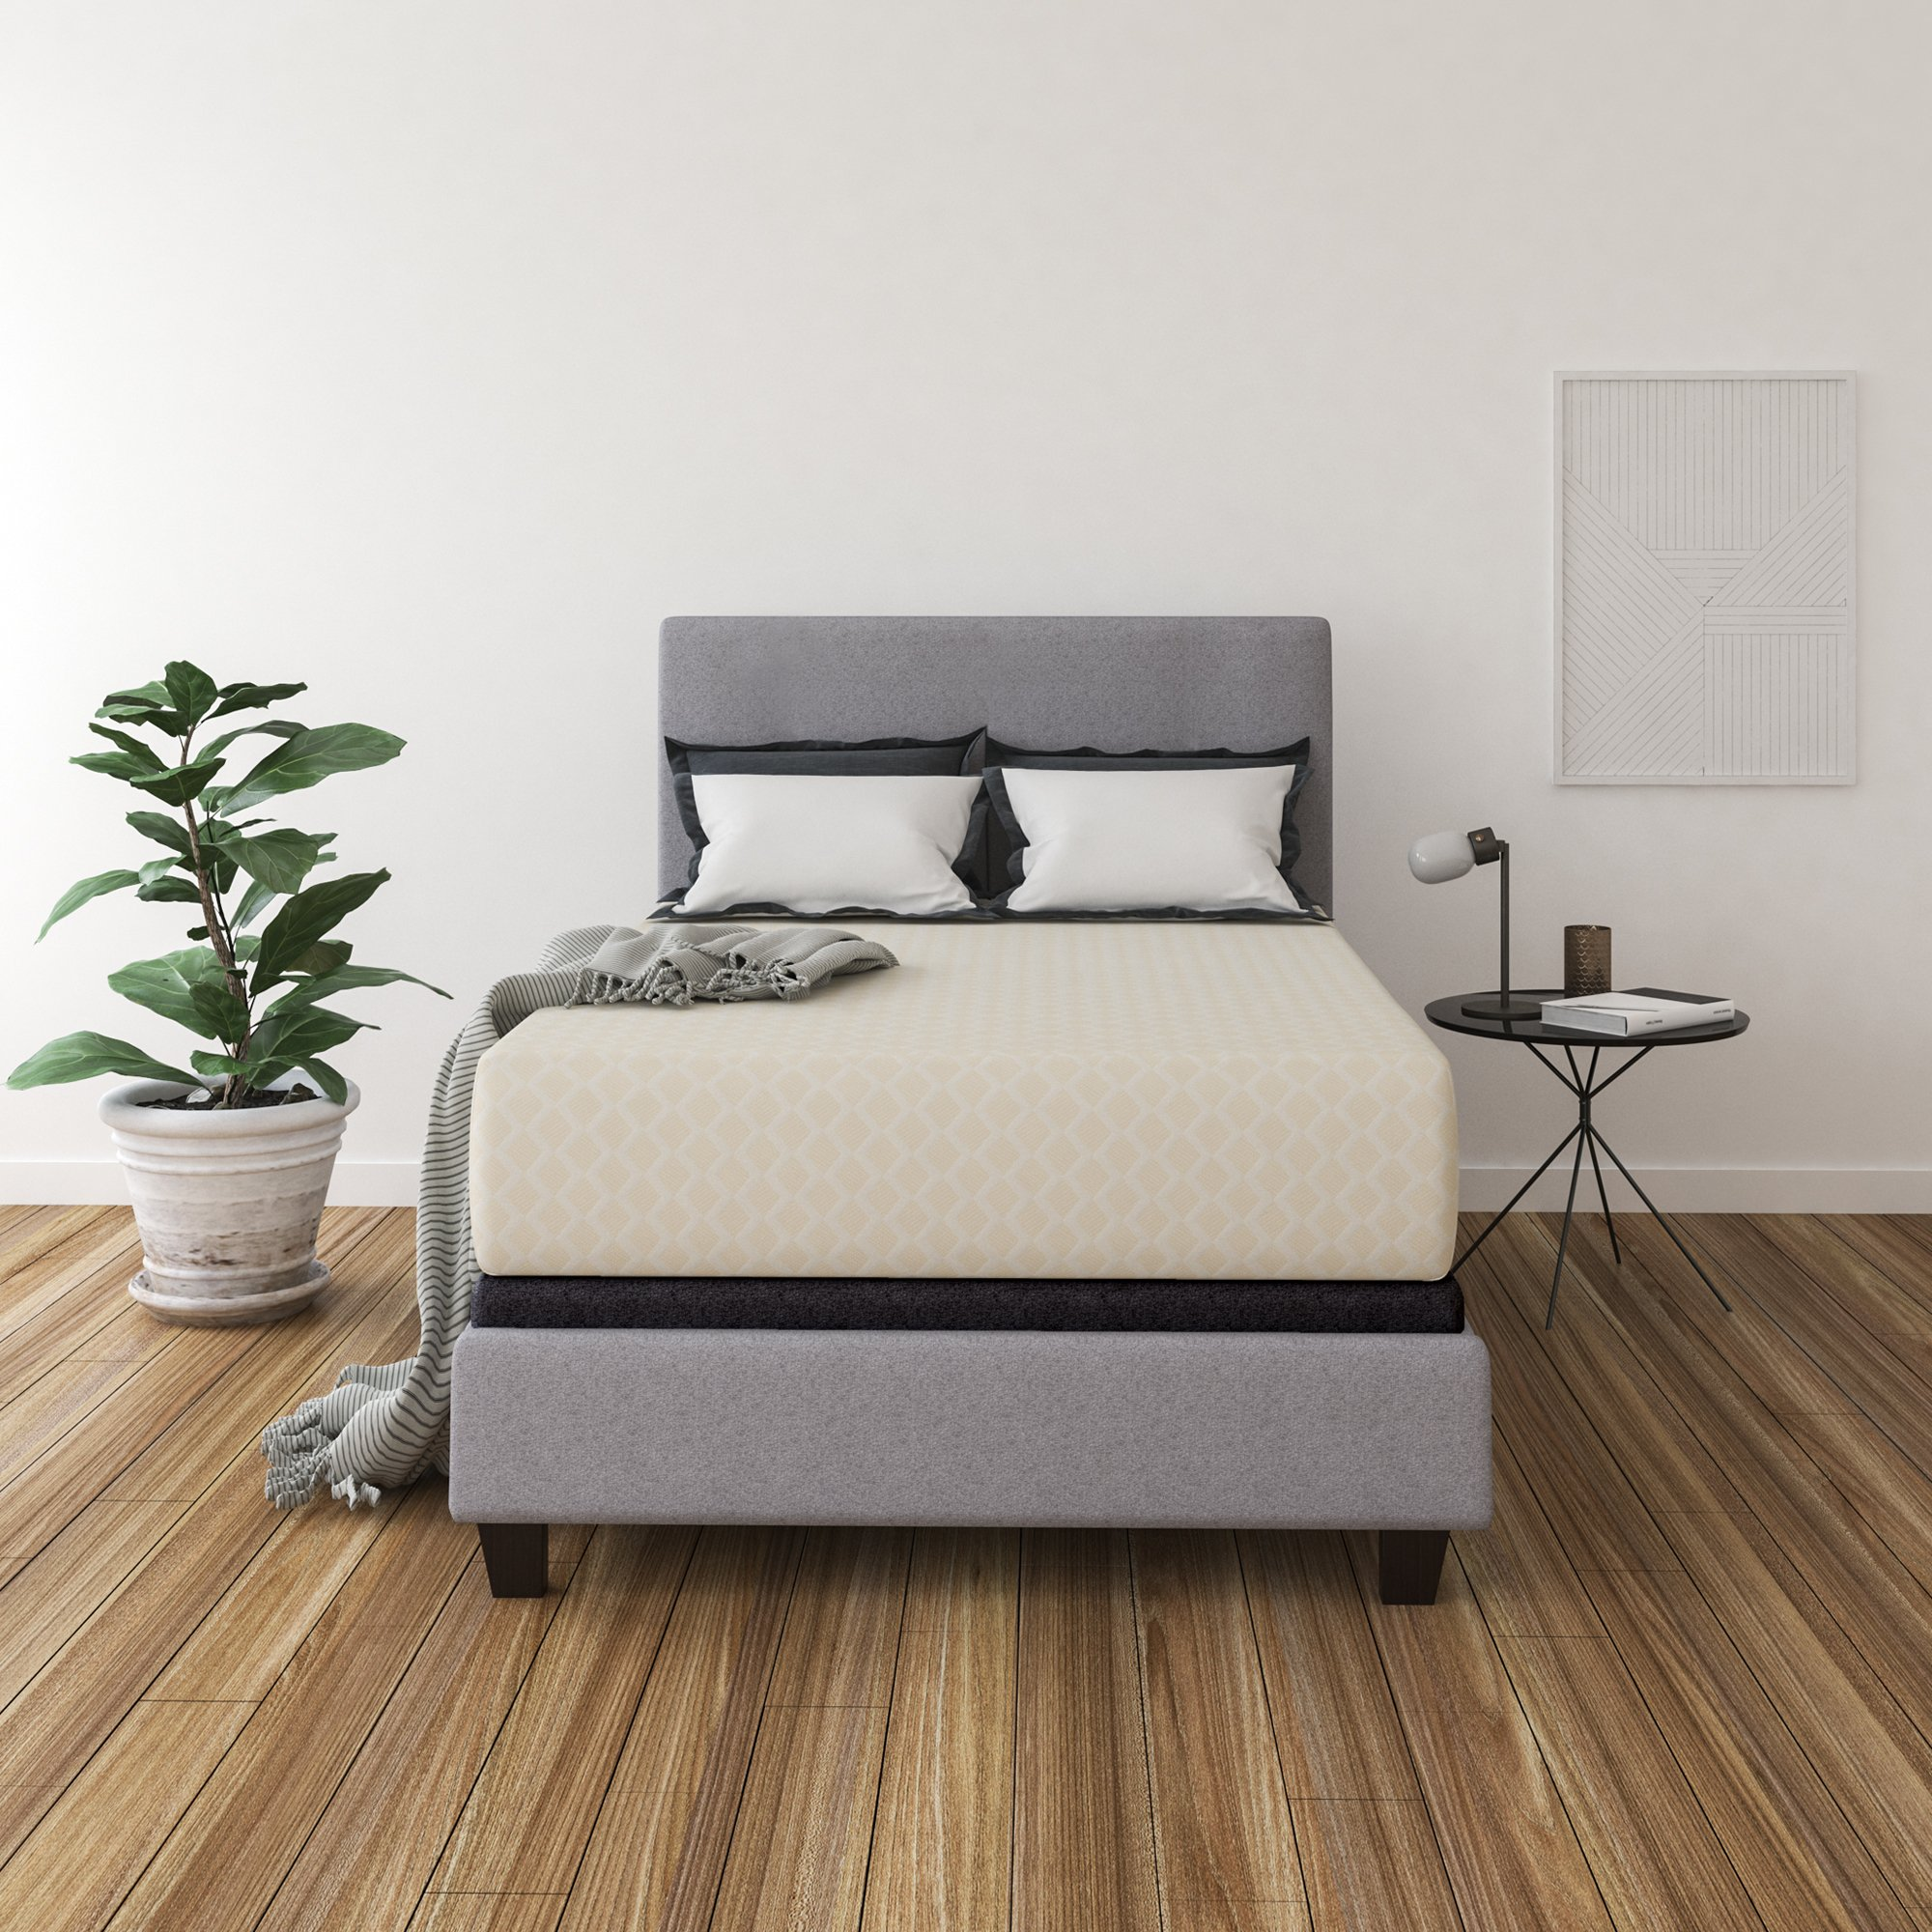 Ashley Furniture Signature Design - 12 Inch Chime Express Memory Foam Mattress - Bed in a Box - Full - Firm Comfort Level - White by Signature Design by Ashley